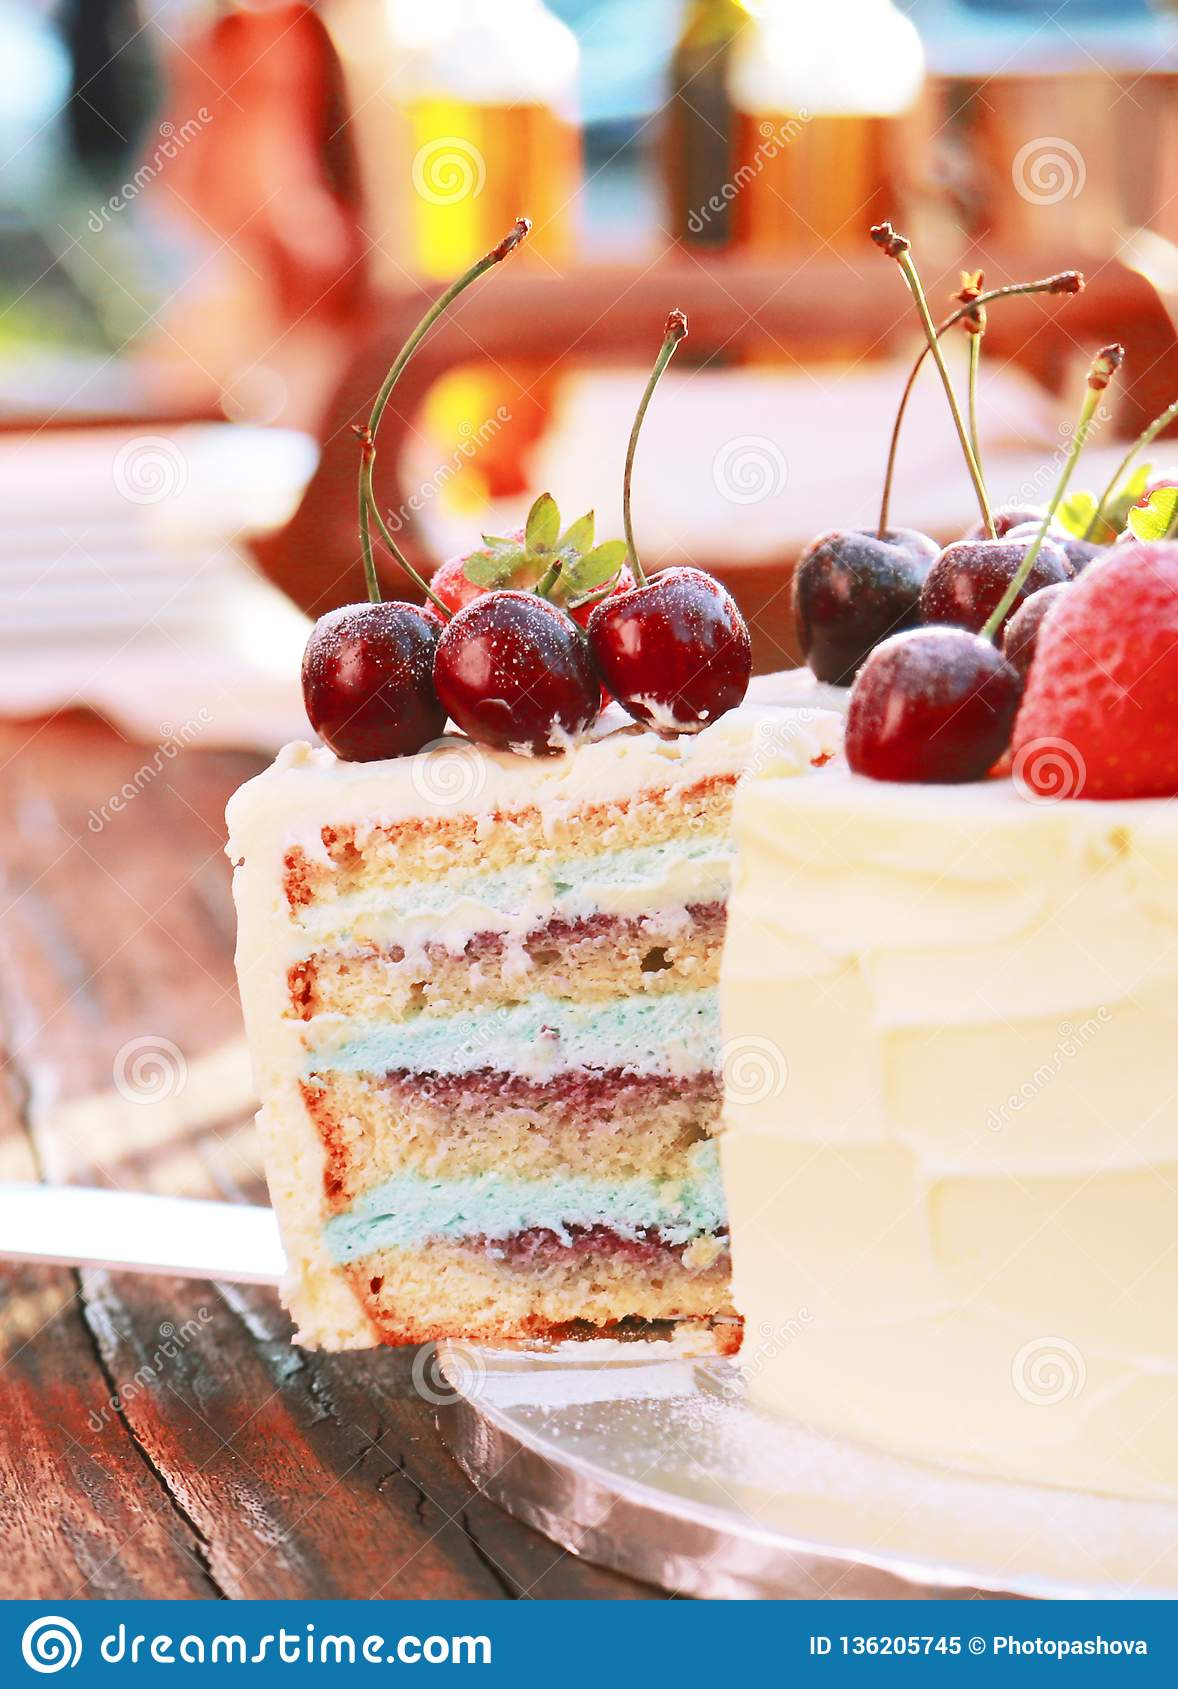 Piece of frash homemade cake with fresh berries and fruits